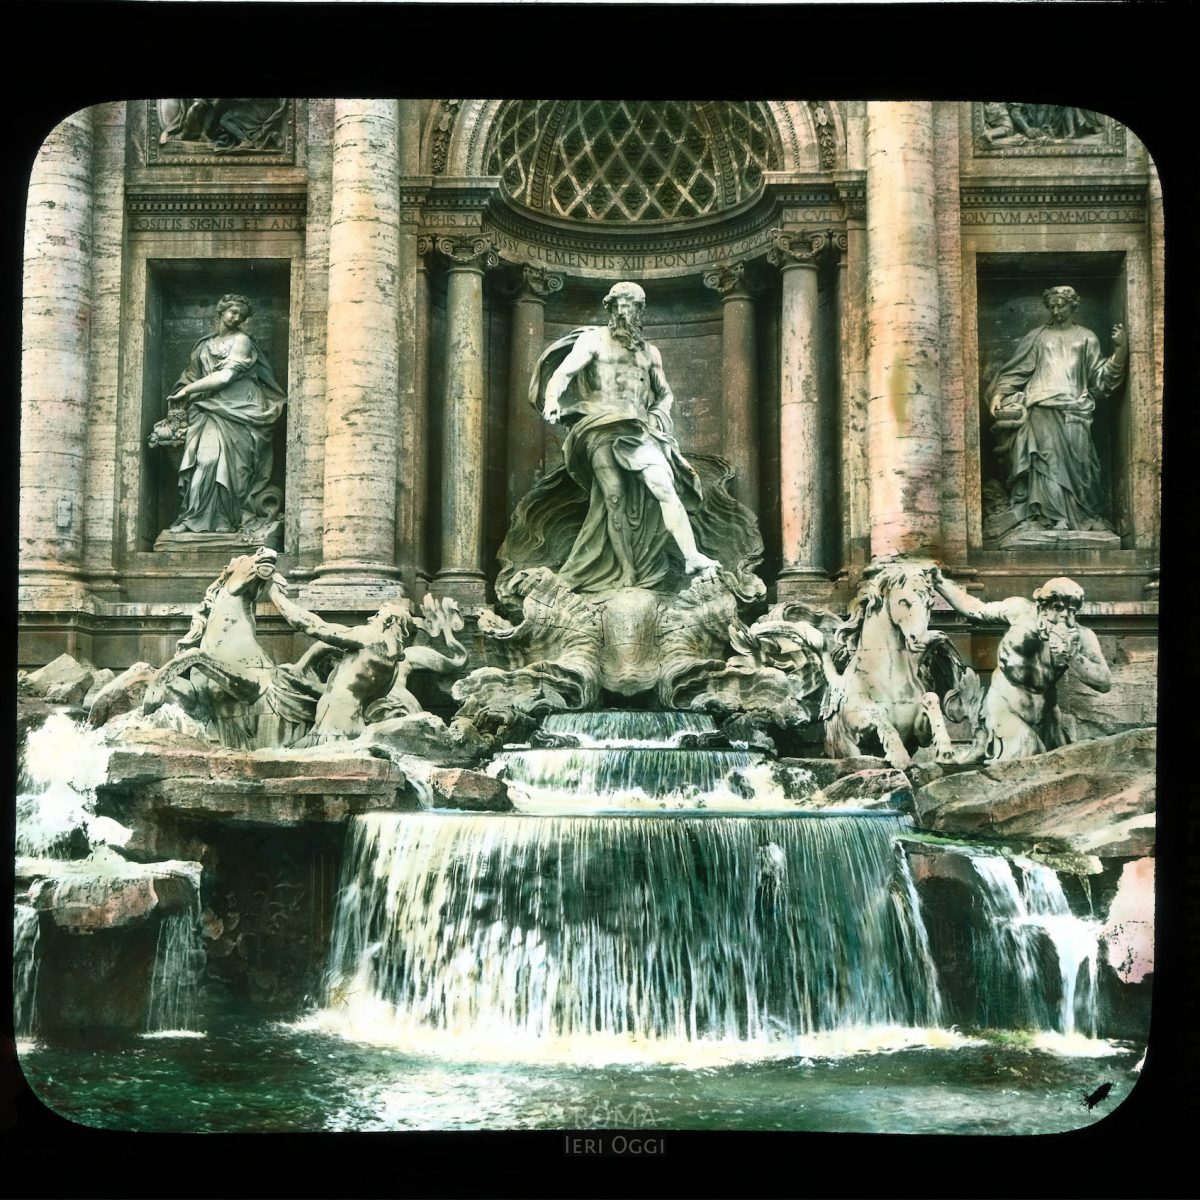 Rome. Trevi Fountain: detail of central group, with sculpture by Pietro Bracci View in tinted lantern slide, ca. 1919-1938. The fountain dates from 1732-1762.